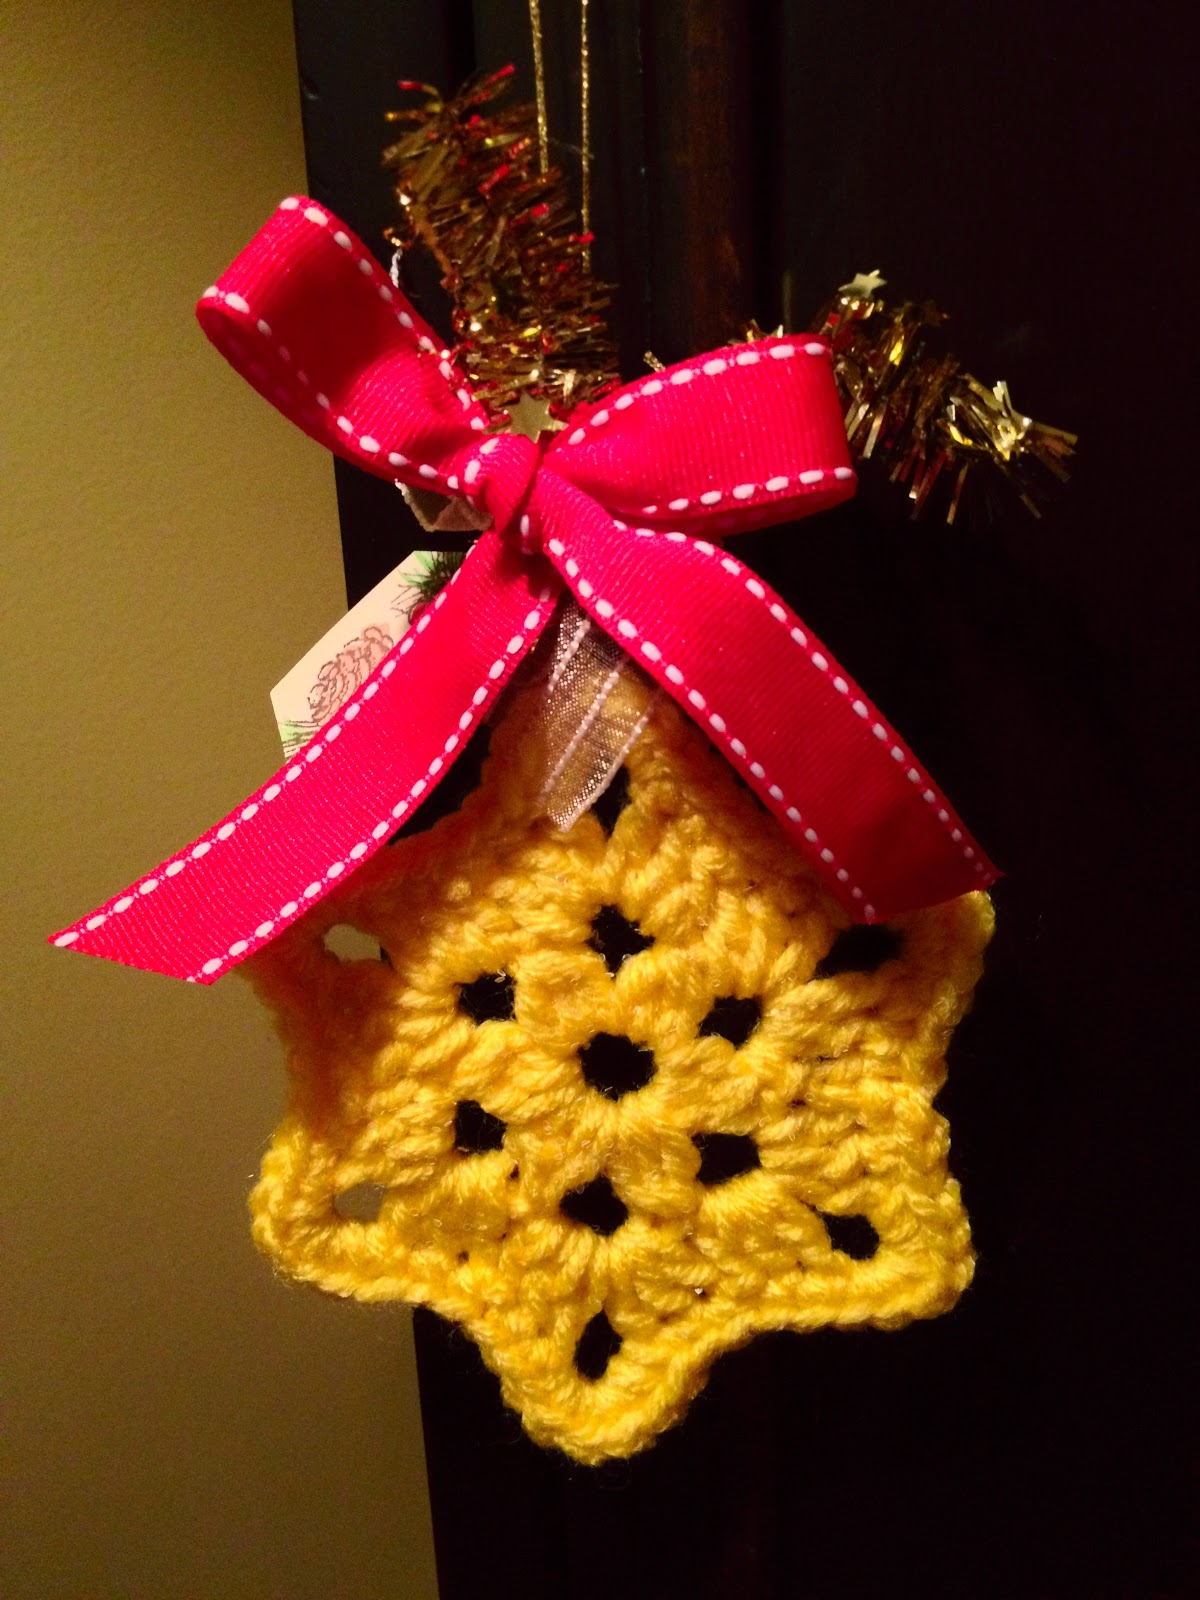 Crochet Ornaments : ... - My crochet and knitting ramblings.: Crochet Christmas Ornaments